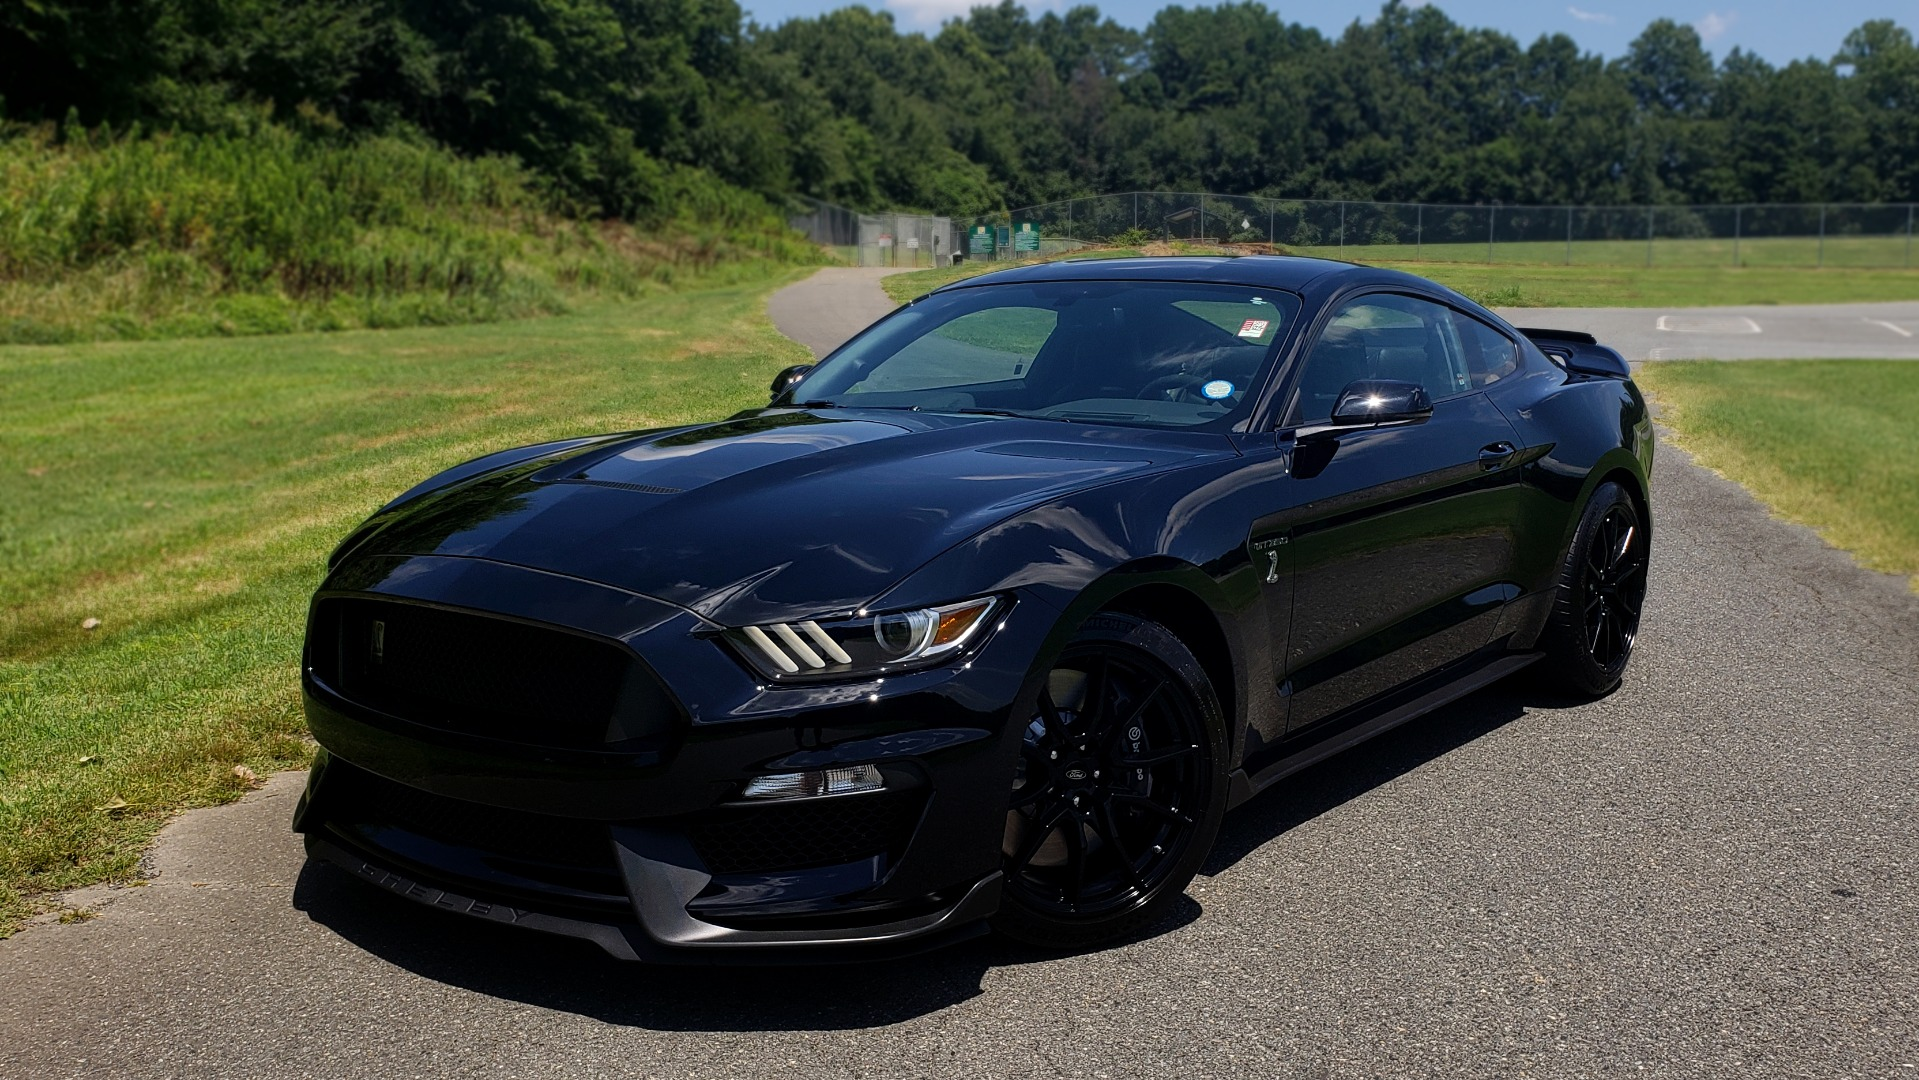 Used 2019 Ford MUSTANG SHELBY GT350 COUPE / TECH PKG / B&O SND / NAV / HNDLNG PKG / REARVIEW for sale Sold at Formula Imports in Charlotte NC 28227 1